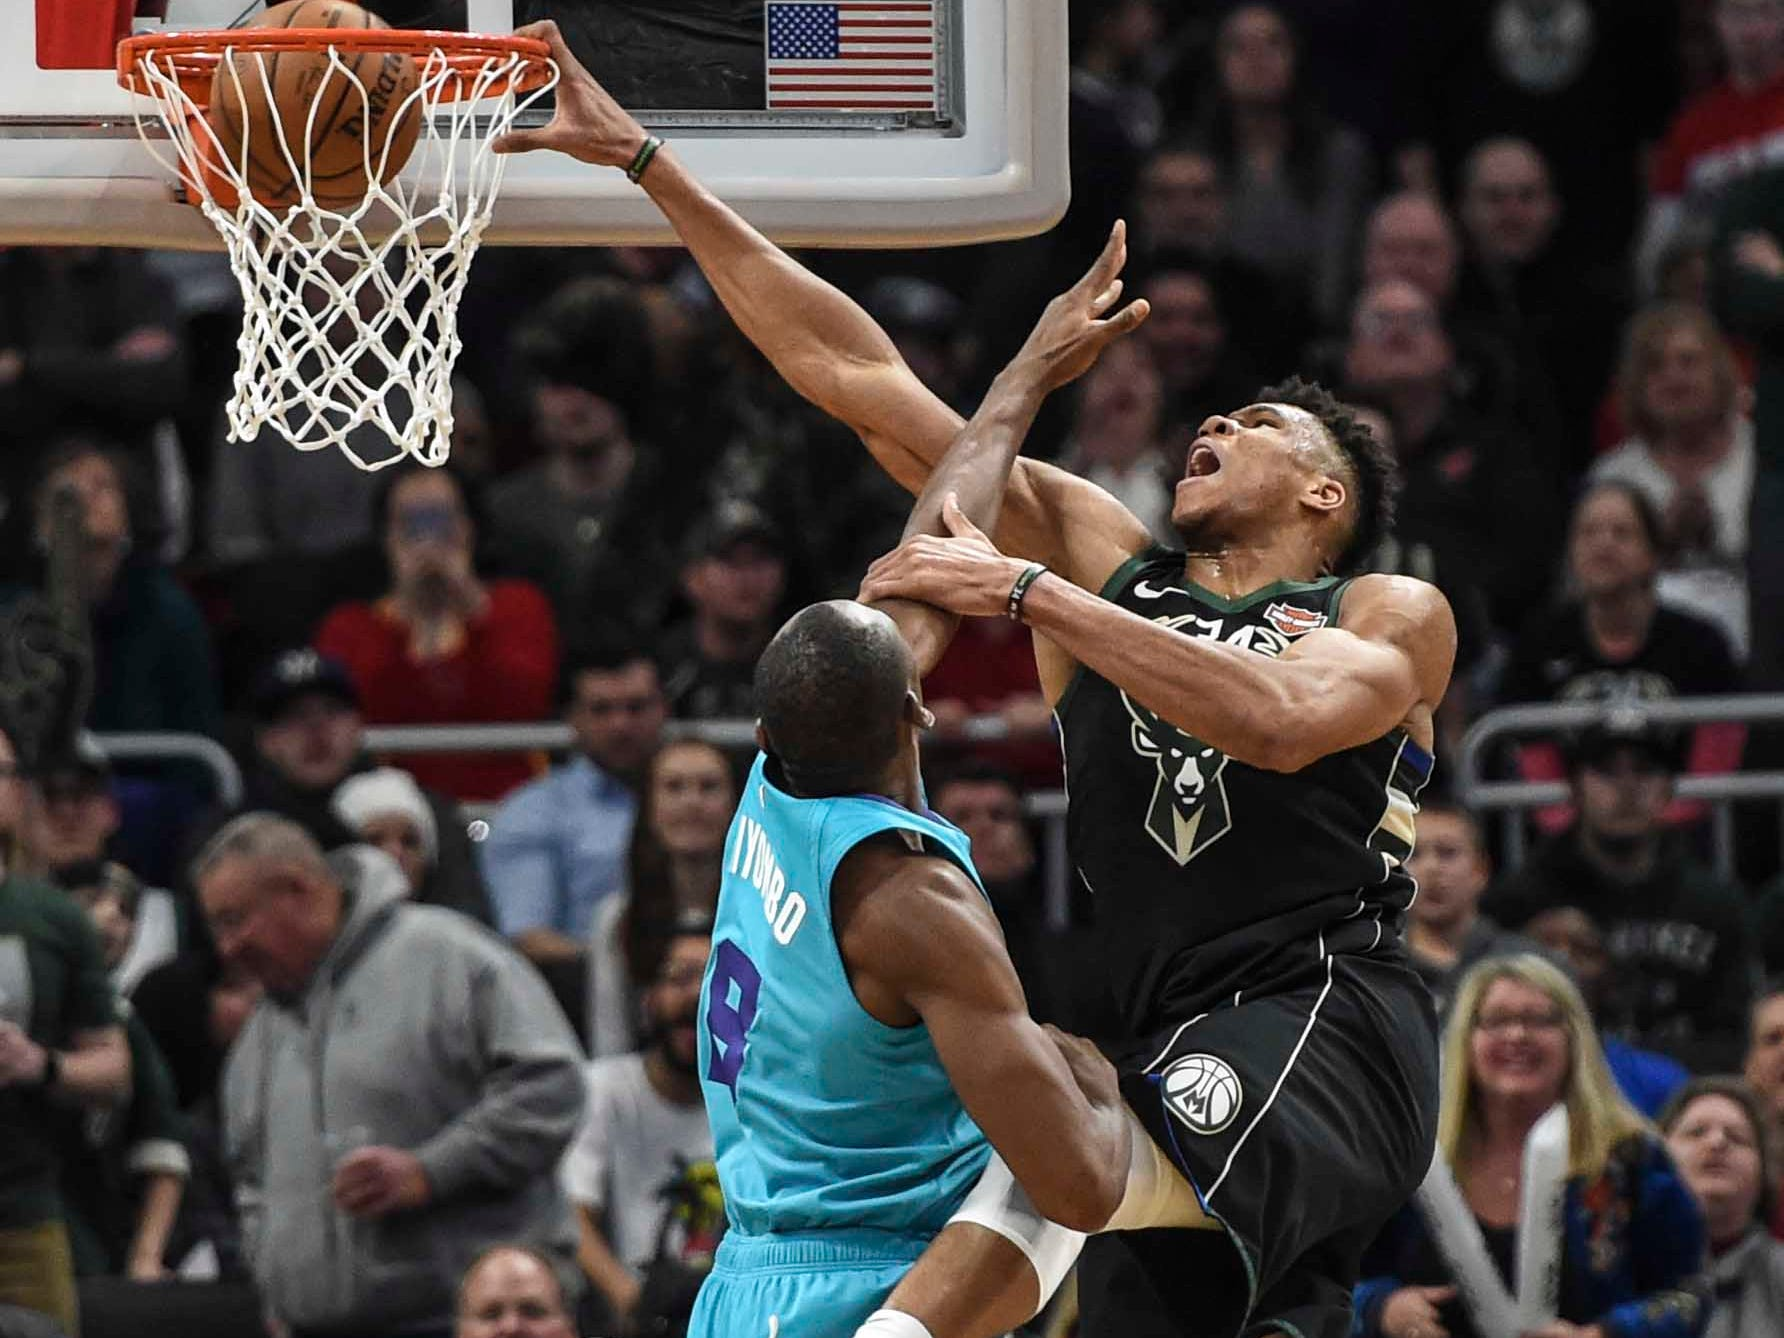 Jan. 25: Bucks forward Giannis Antetokounmpo (34) reaches to finish the one-handed slam over Hornets defender Bismack Biyombo (8) during the second half in Milwaukee.